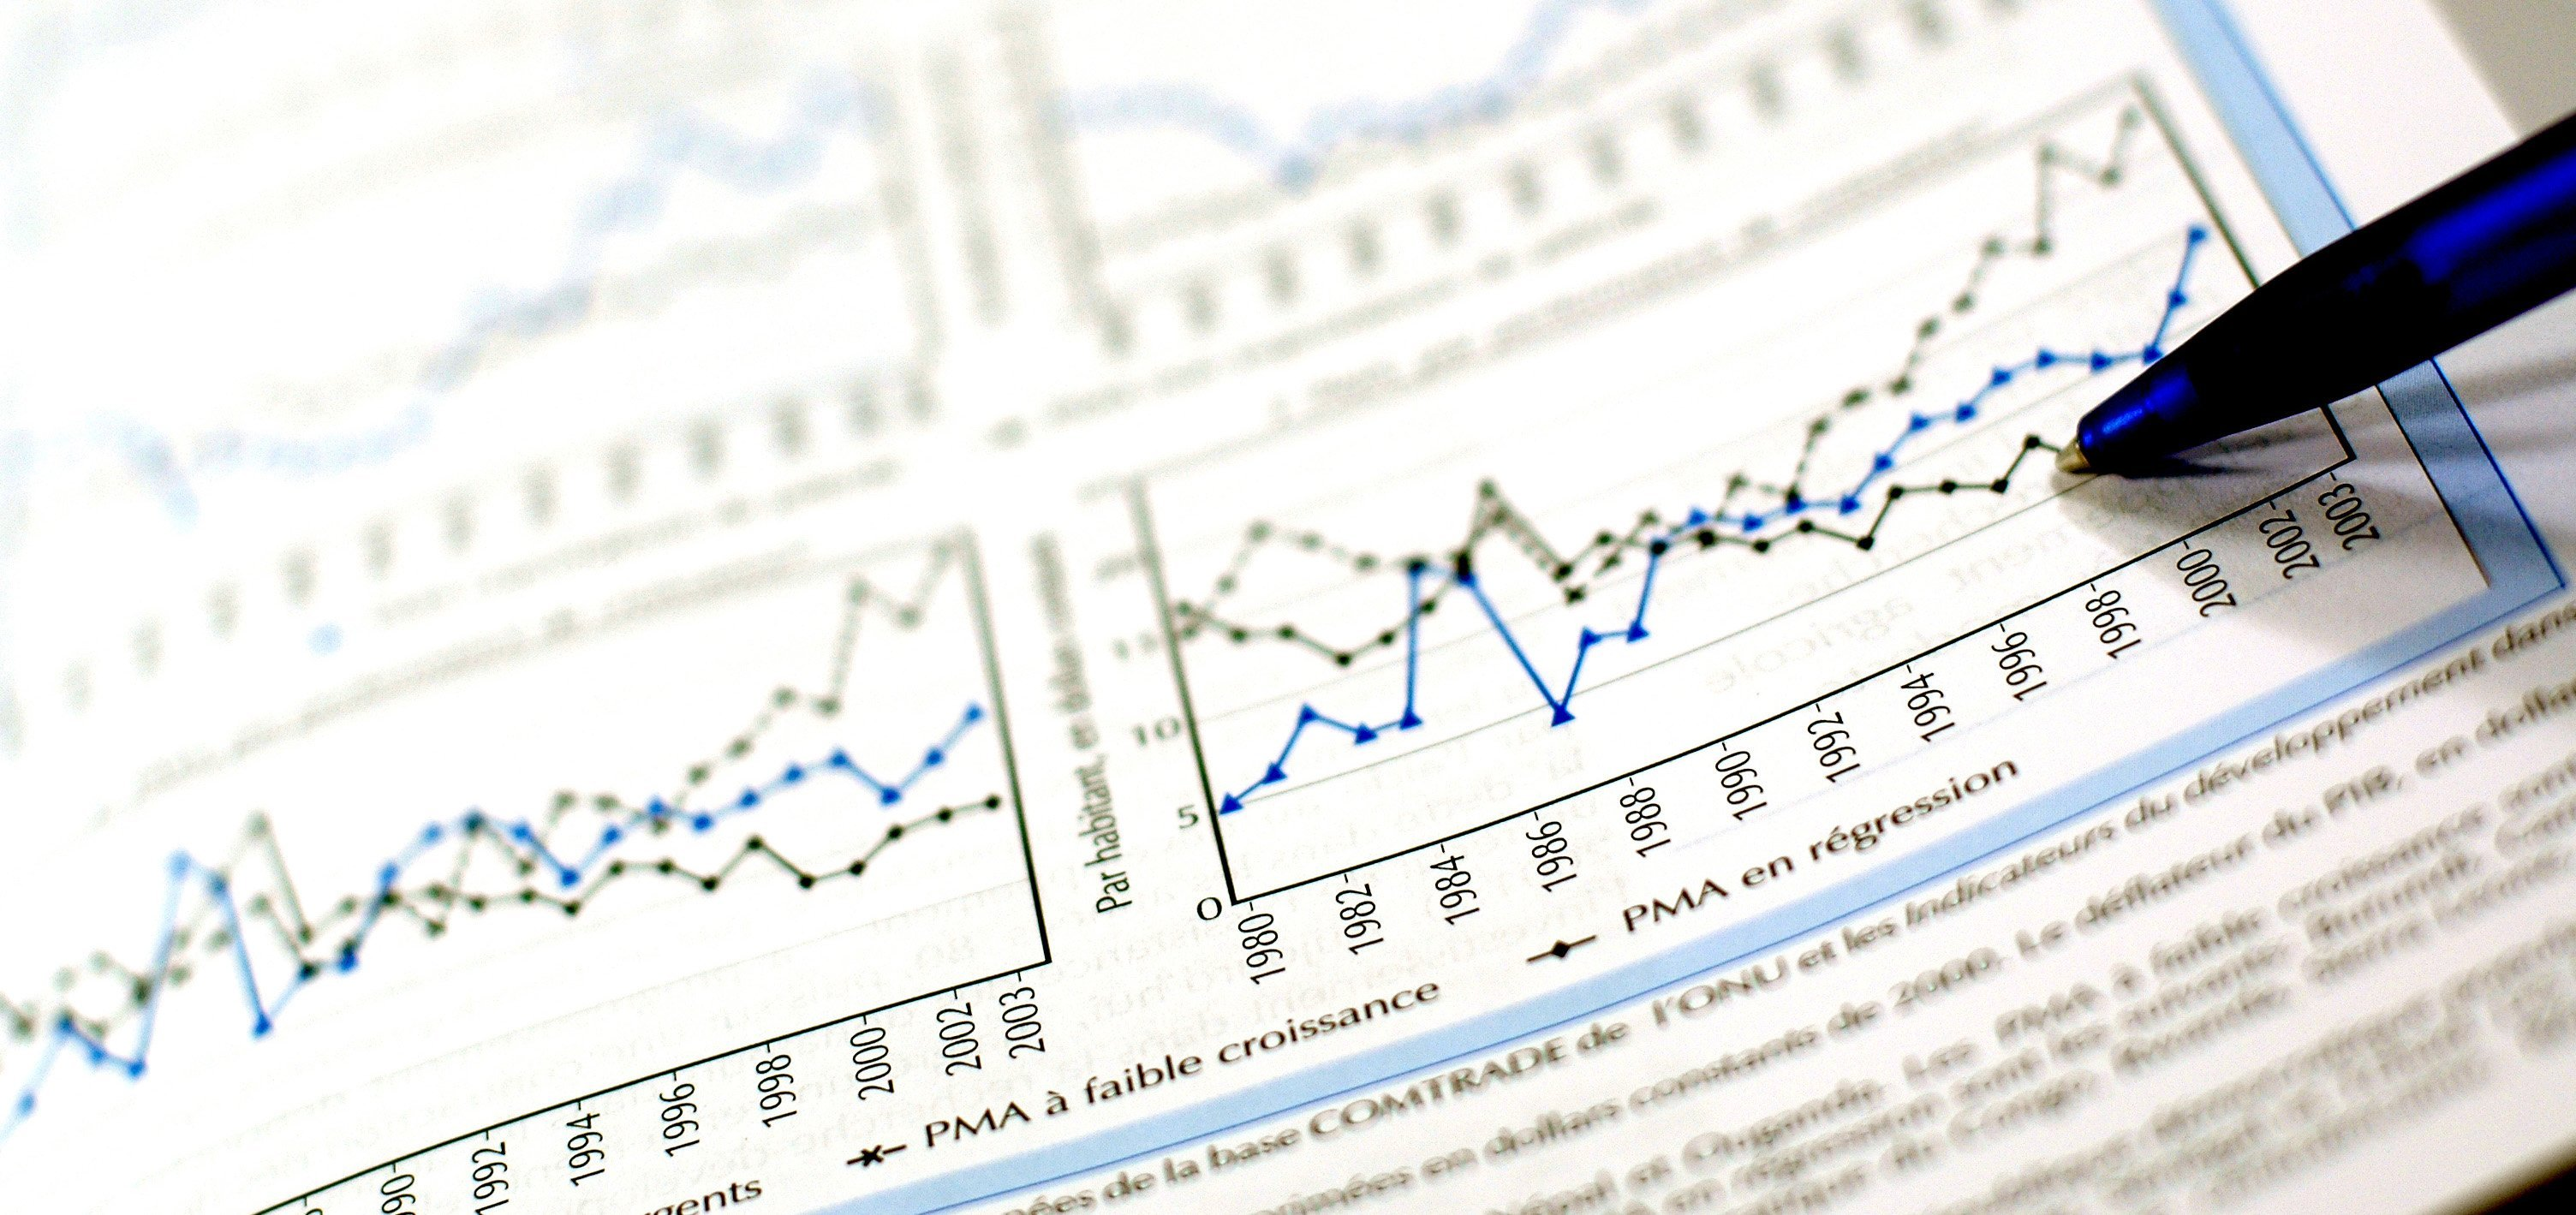 Bollinger Bands Can Be Used Effectively To Determine Market Conditions